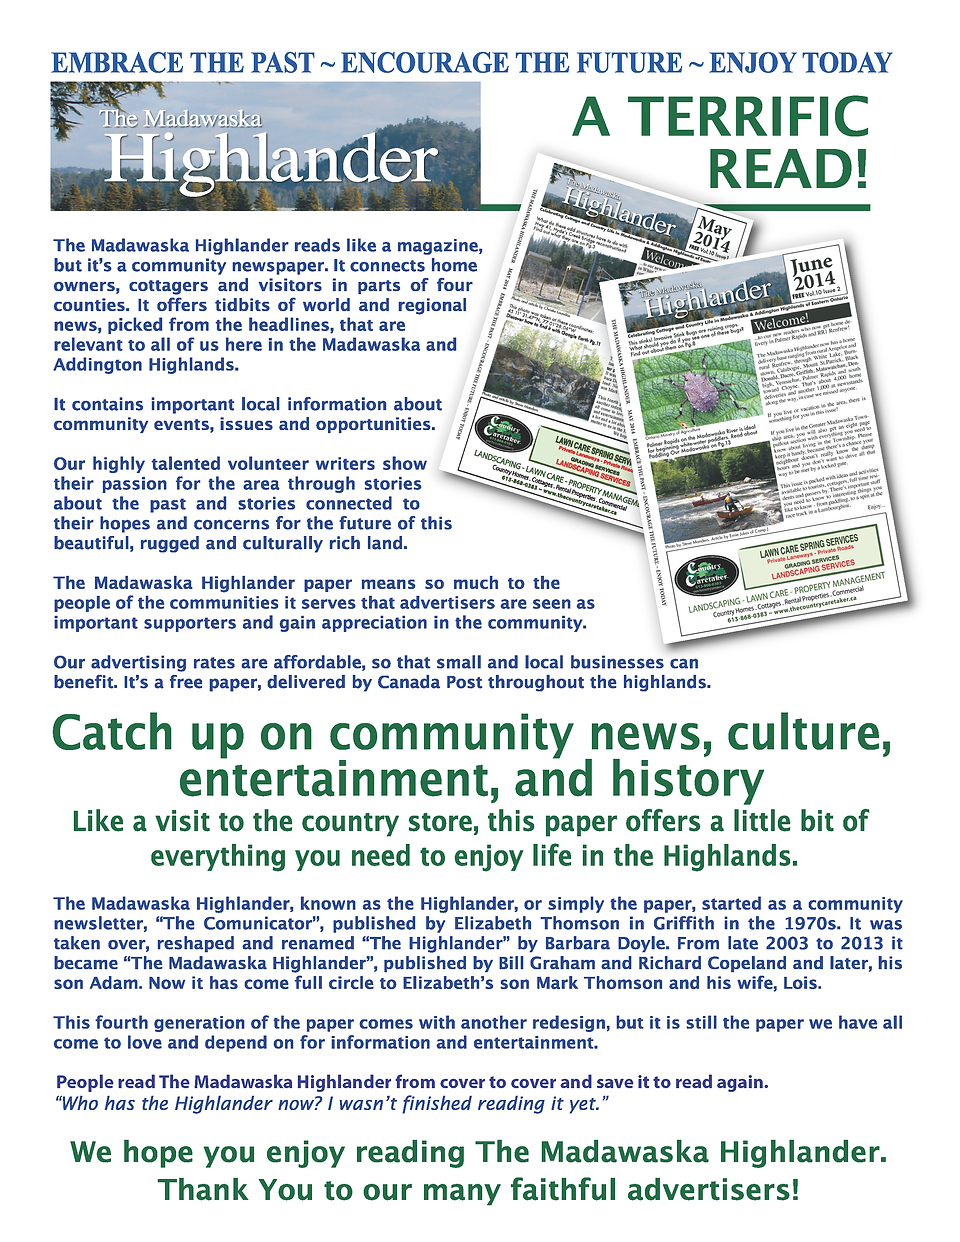 ABOUT THE MADAWASKA HIGHLANDER TERRIFIC READ HIGHLANDS NEWSPAPER